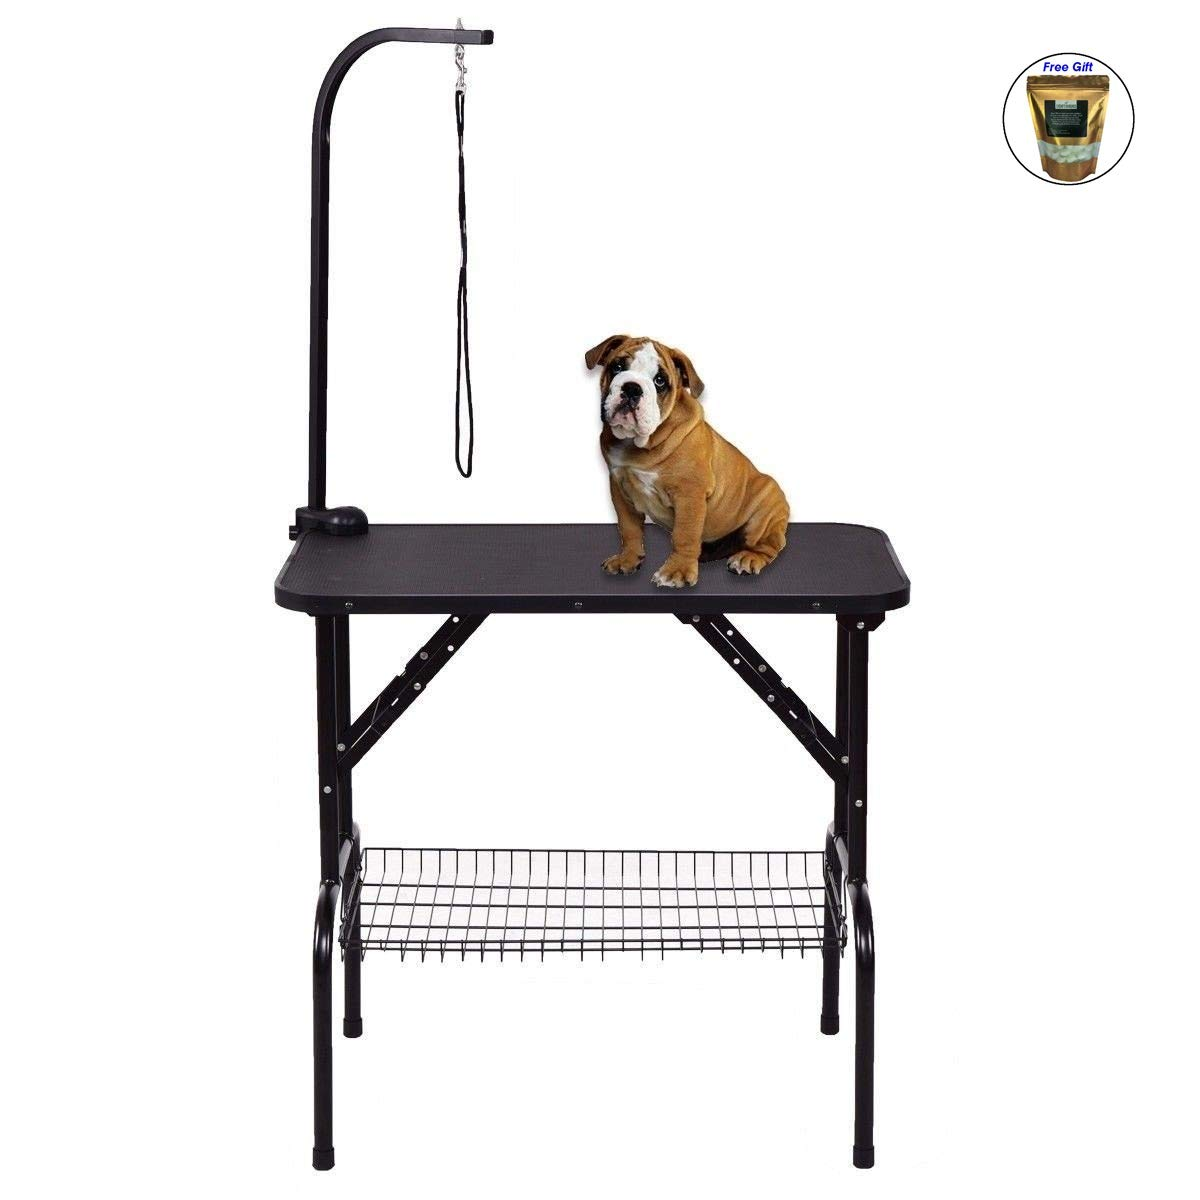 CWY 32'' Pet Grooming Table Durable Foldable Rubber Top Only by eight24hours by CWY